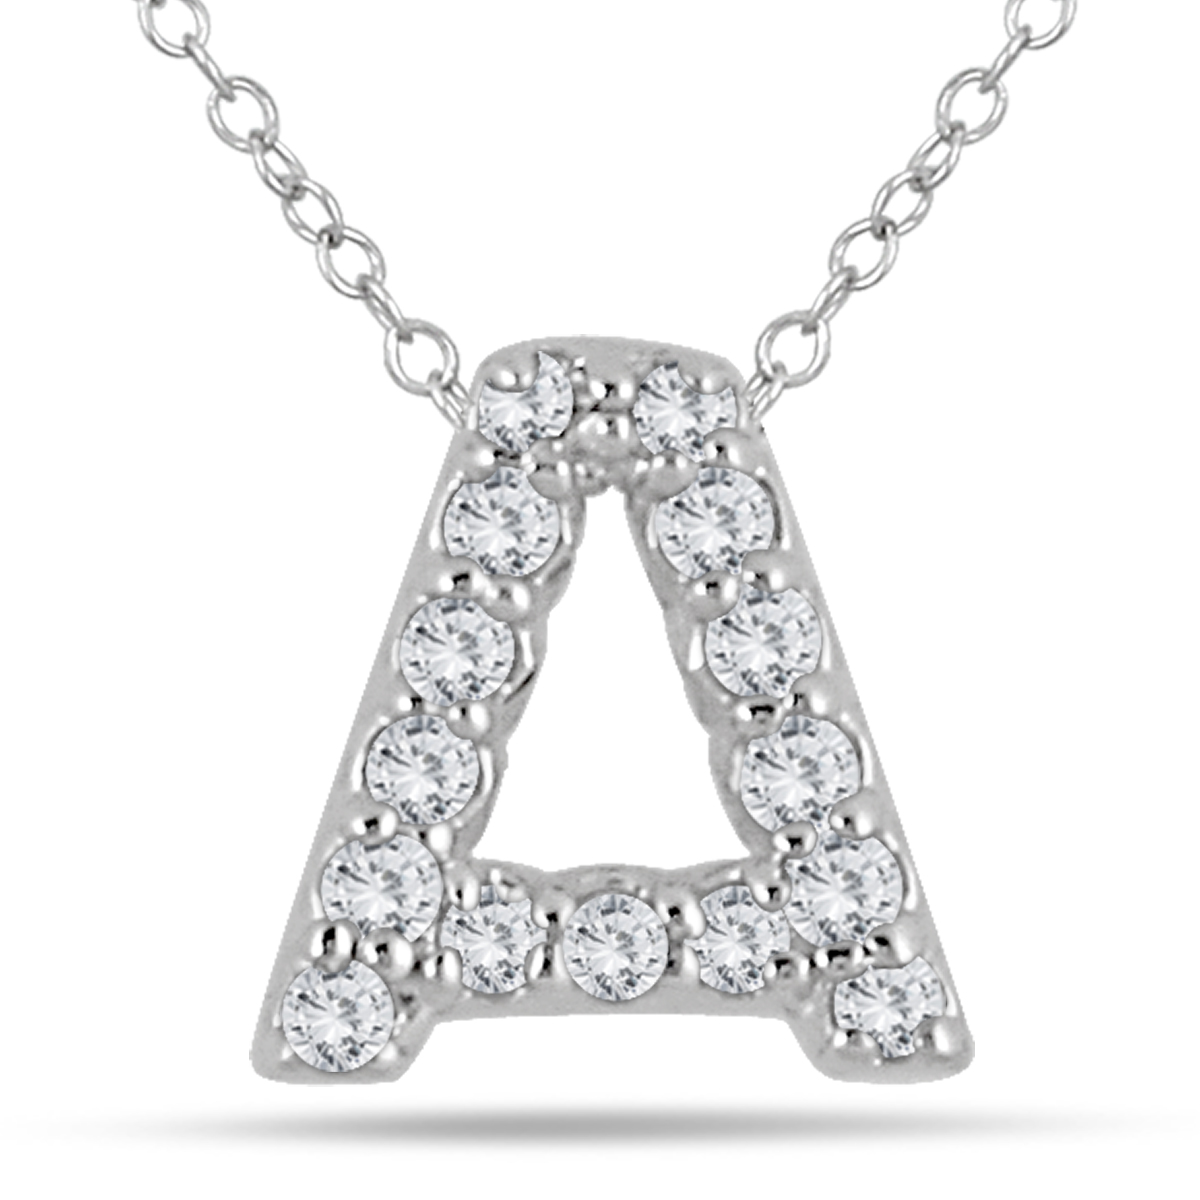 1/10 Carat TW A Initial Diamond Pendant in 10K White Gold